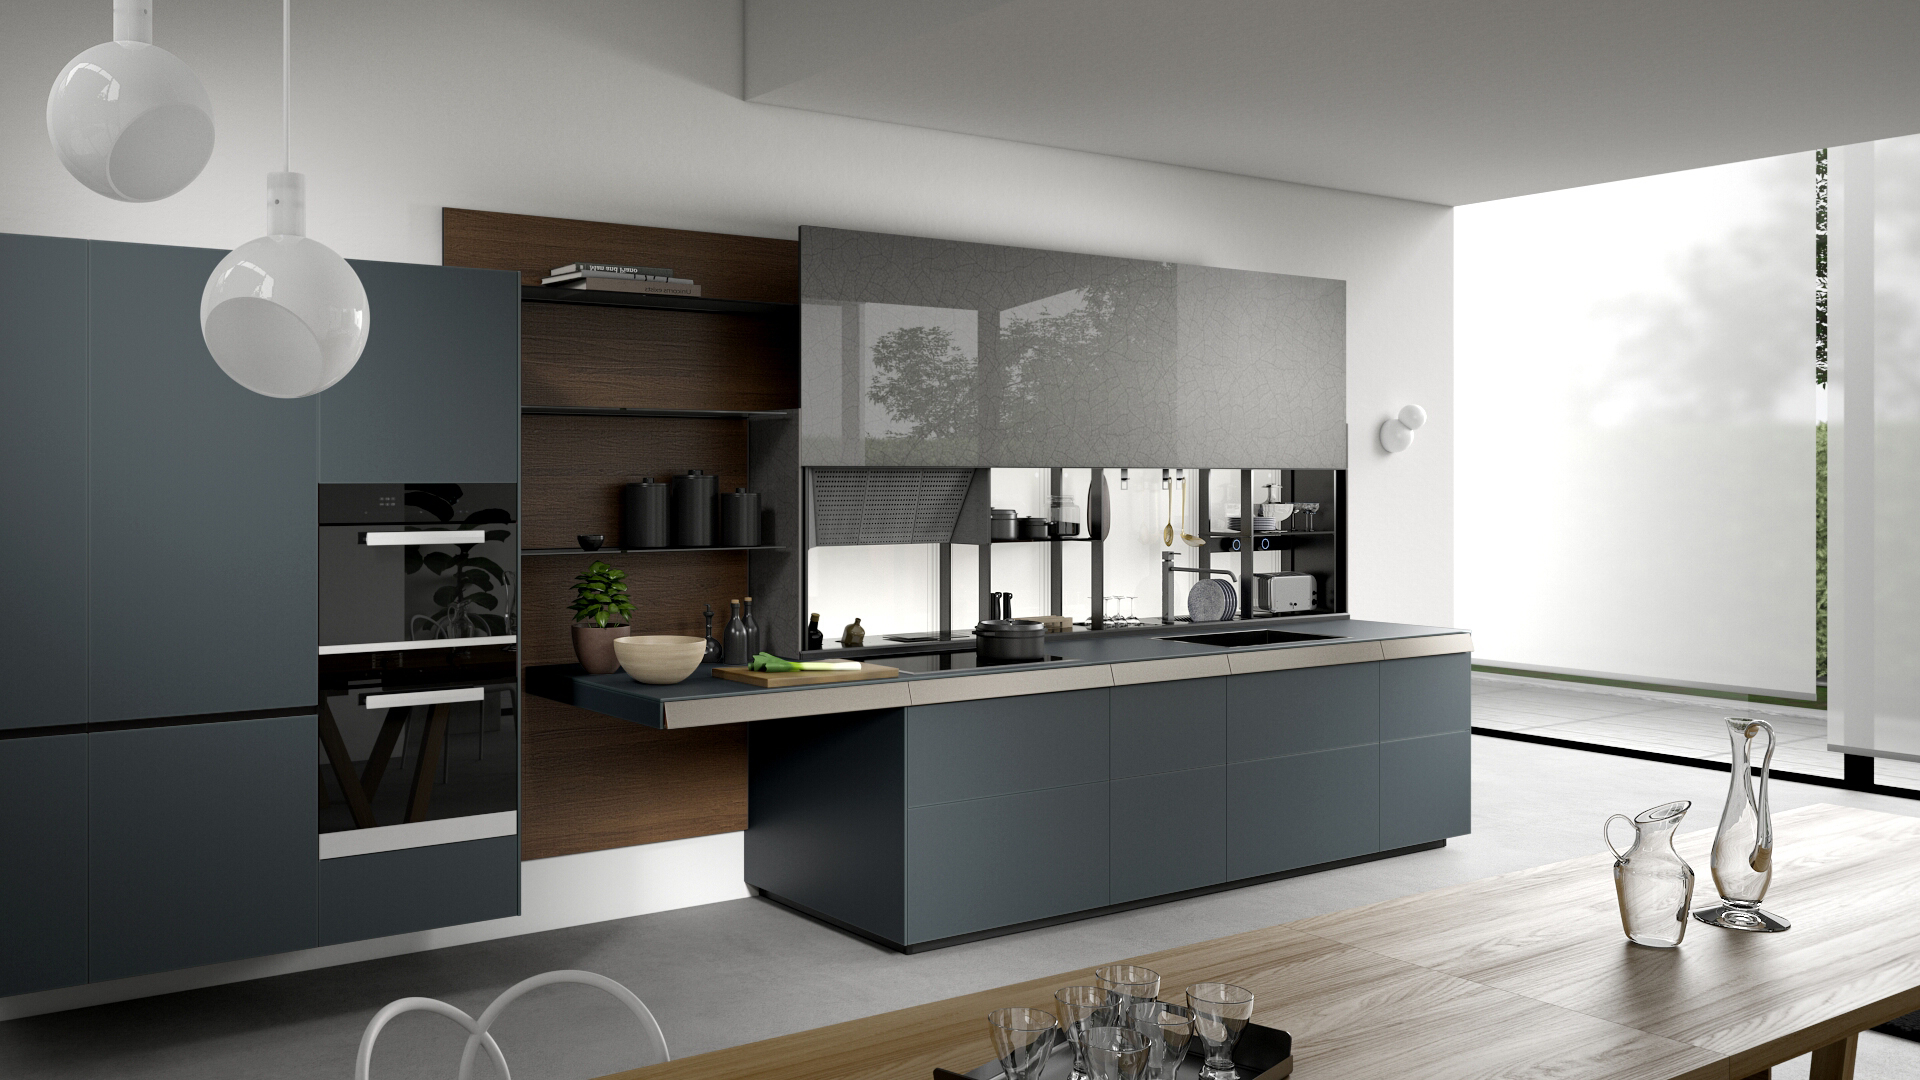 Cucina The Kitchen Company Valcucine Modern And Fitted Designer Italian Kitchens